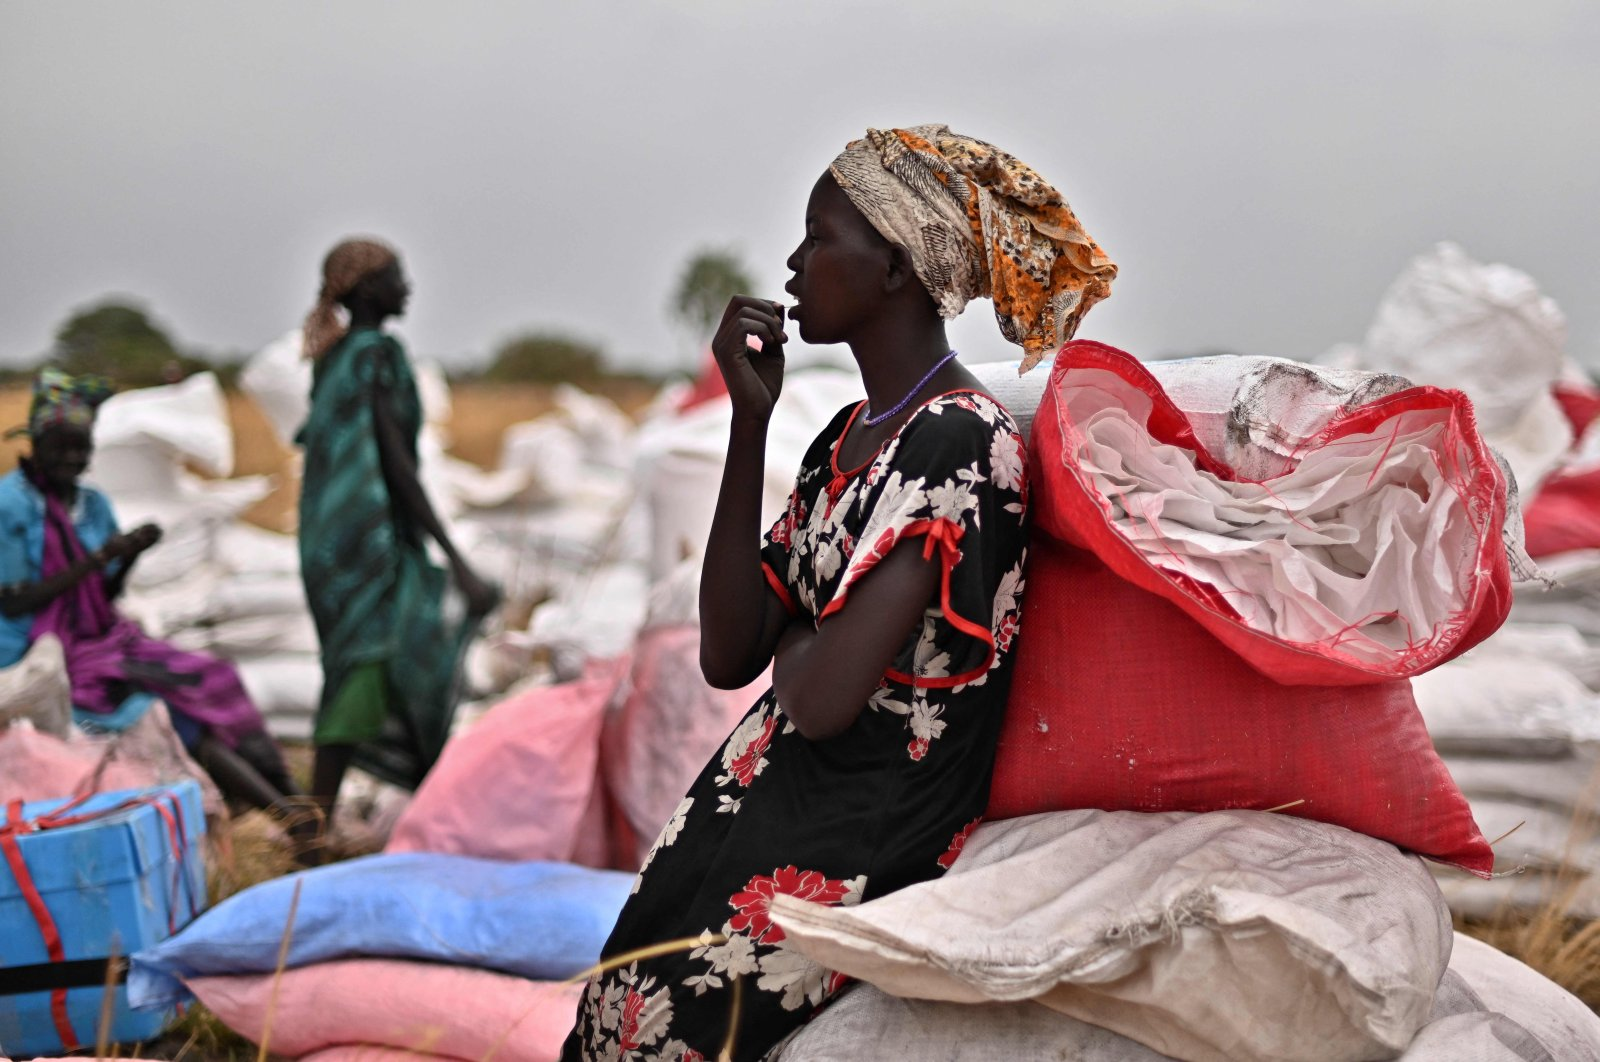 A villager who volunteered to fetch gunny bags containing food rations from the site of an airdrop takes a break at a village in Ayod county, South Sudan, Feb. 6, 2020. (AFP Photo)